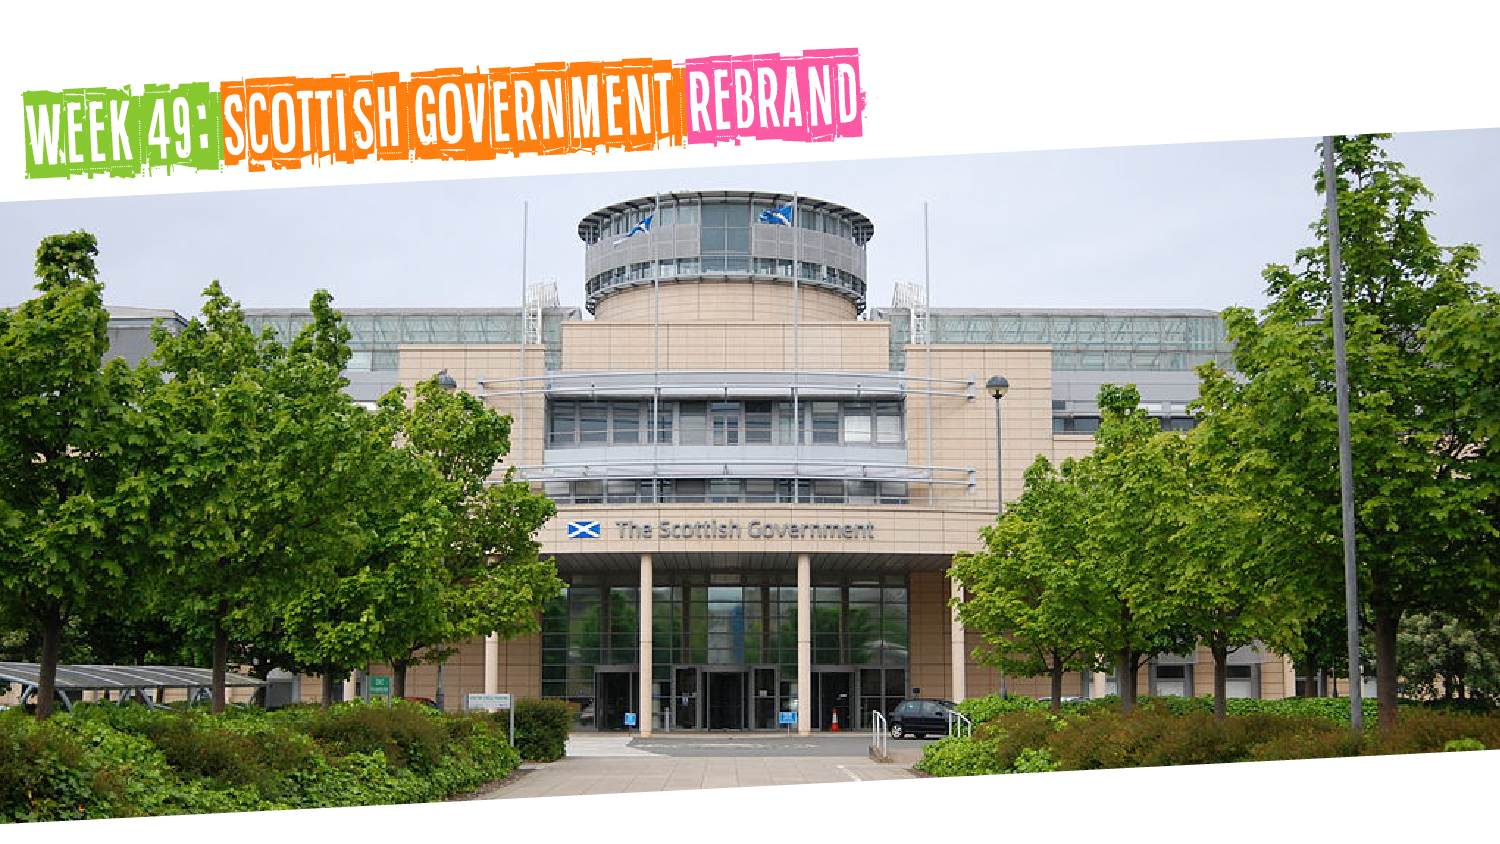 IYM Week 49: Scottish Government Rebrand